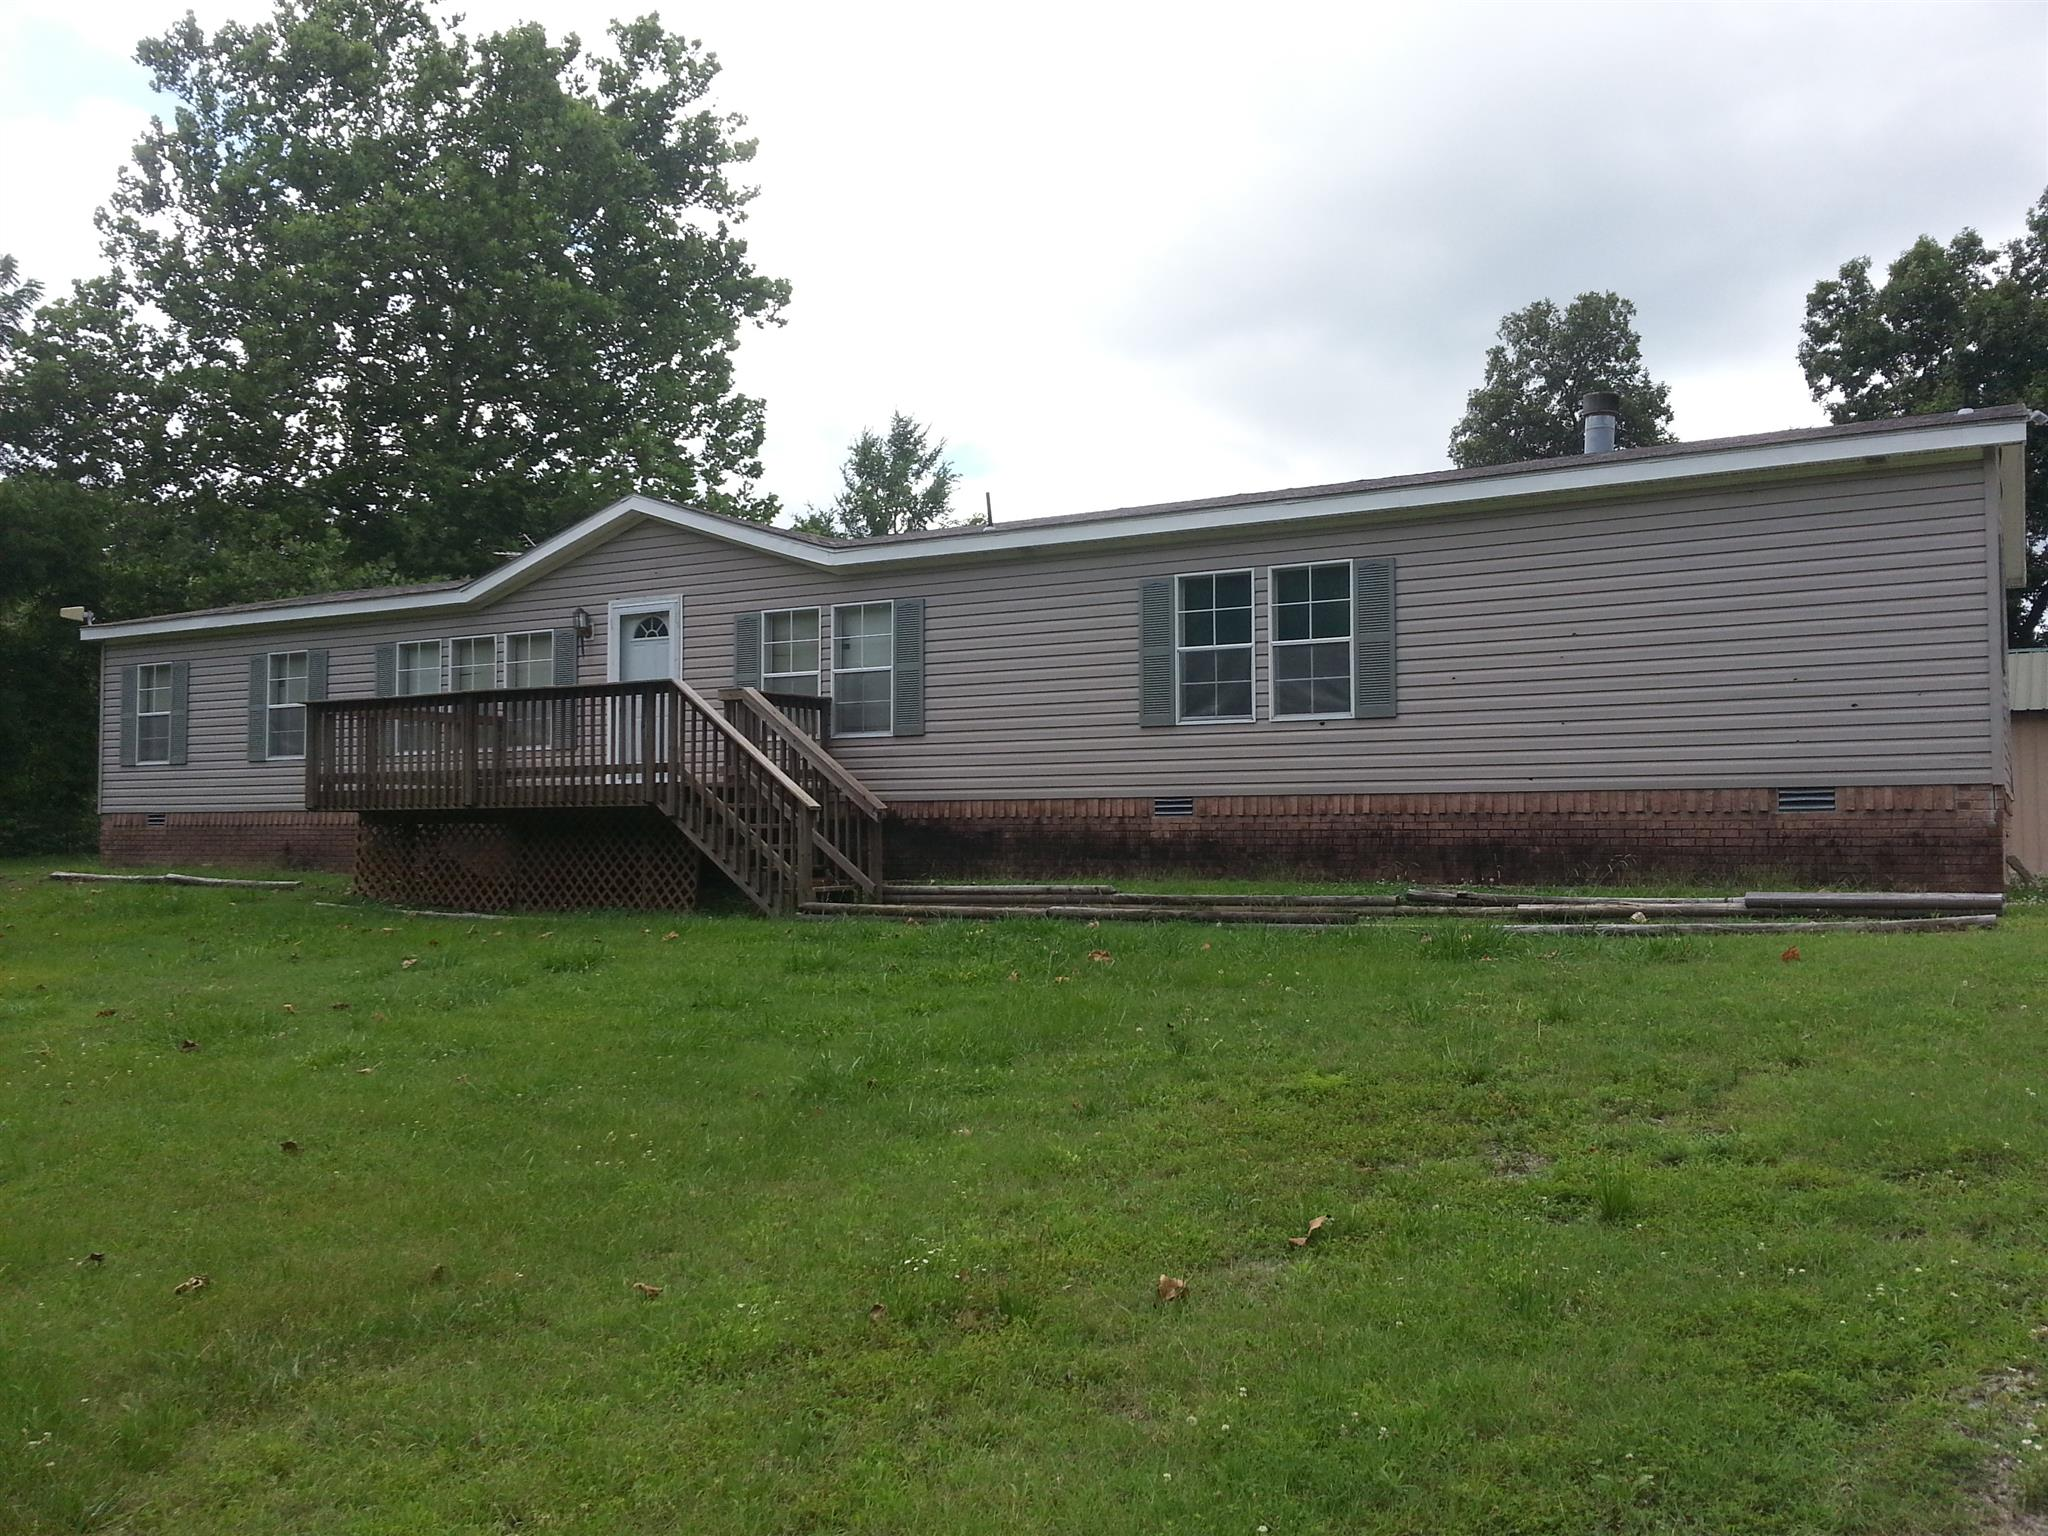 1320 Cedar Creek Rd, Vanleer, TN 37181